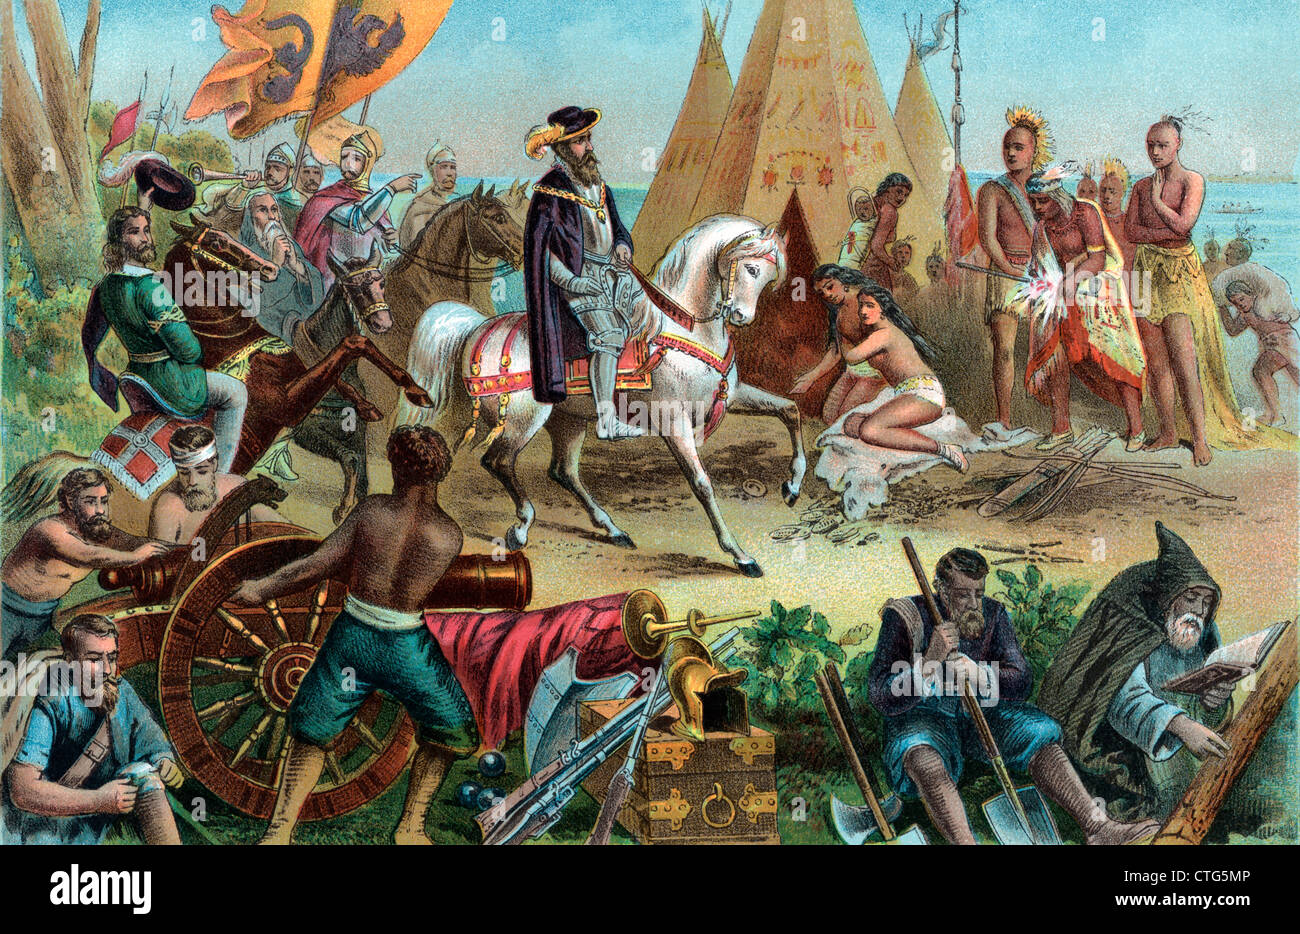 1500s SPANISH EXPLORER HERNANDO DE SOTO DISCOVERING THE MISSISSIPPI RIVER 1541 NATIVE AMERICANS IN TEPEES ENGRAVING - Stock Image